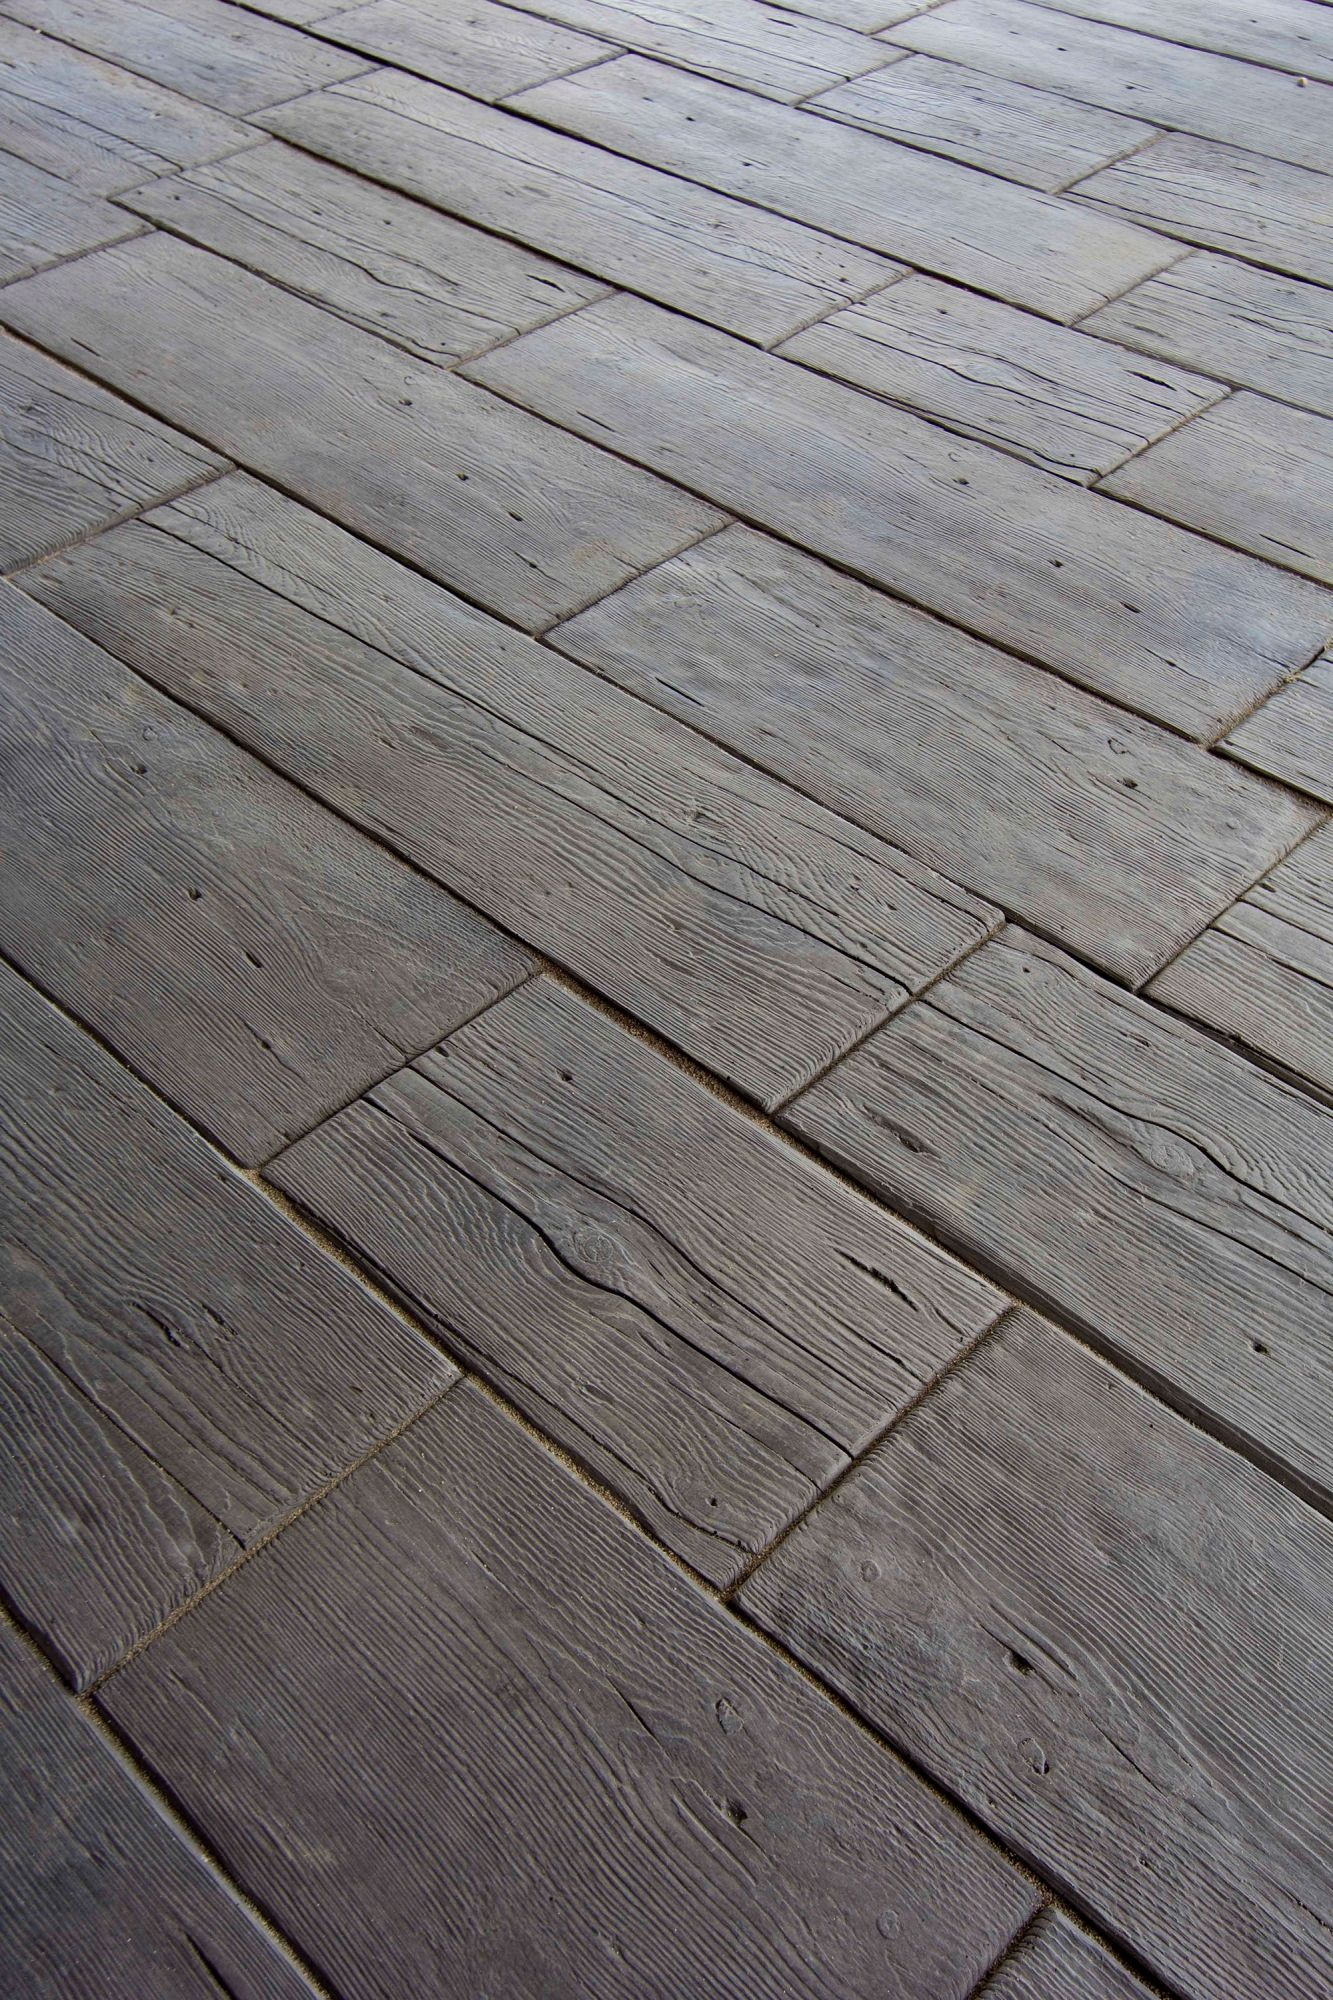 Rustic wood nope 2 thick concrete pavers barn plank rustic wood nope 2 thick concrete pavers barn plank landscape tile by silver creek stoneworks rochester mn ideal for outdoor paths decks dailygadgetfo Choice Image